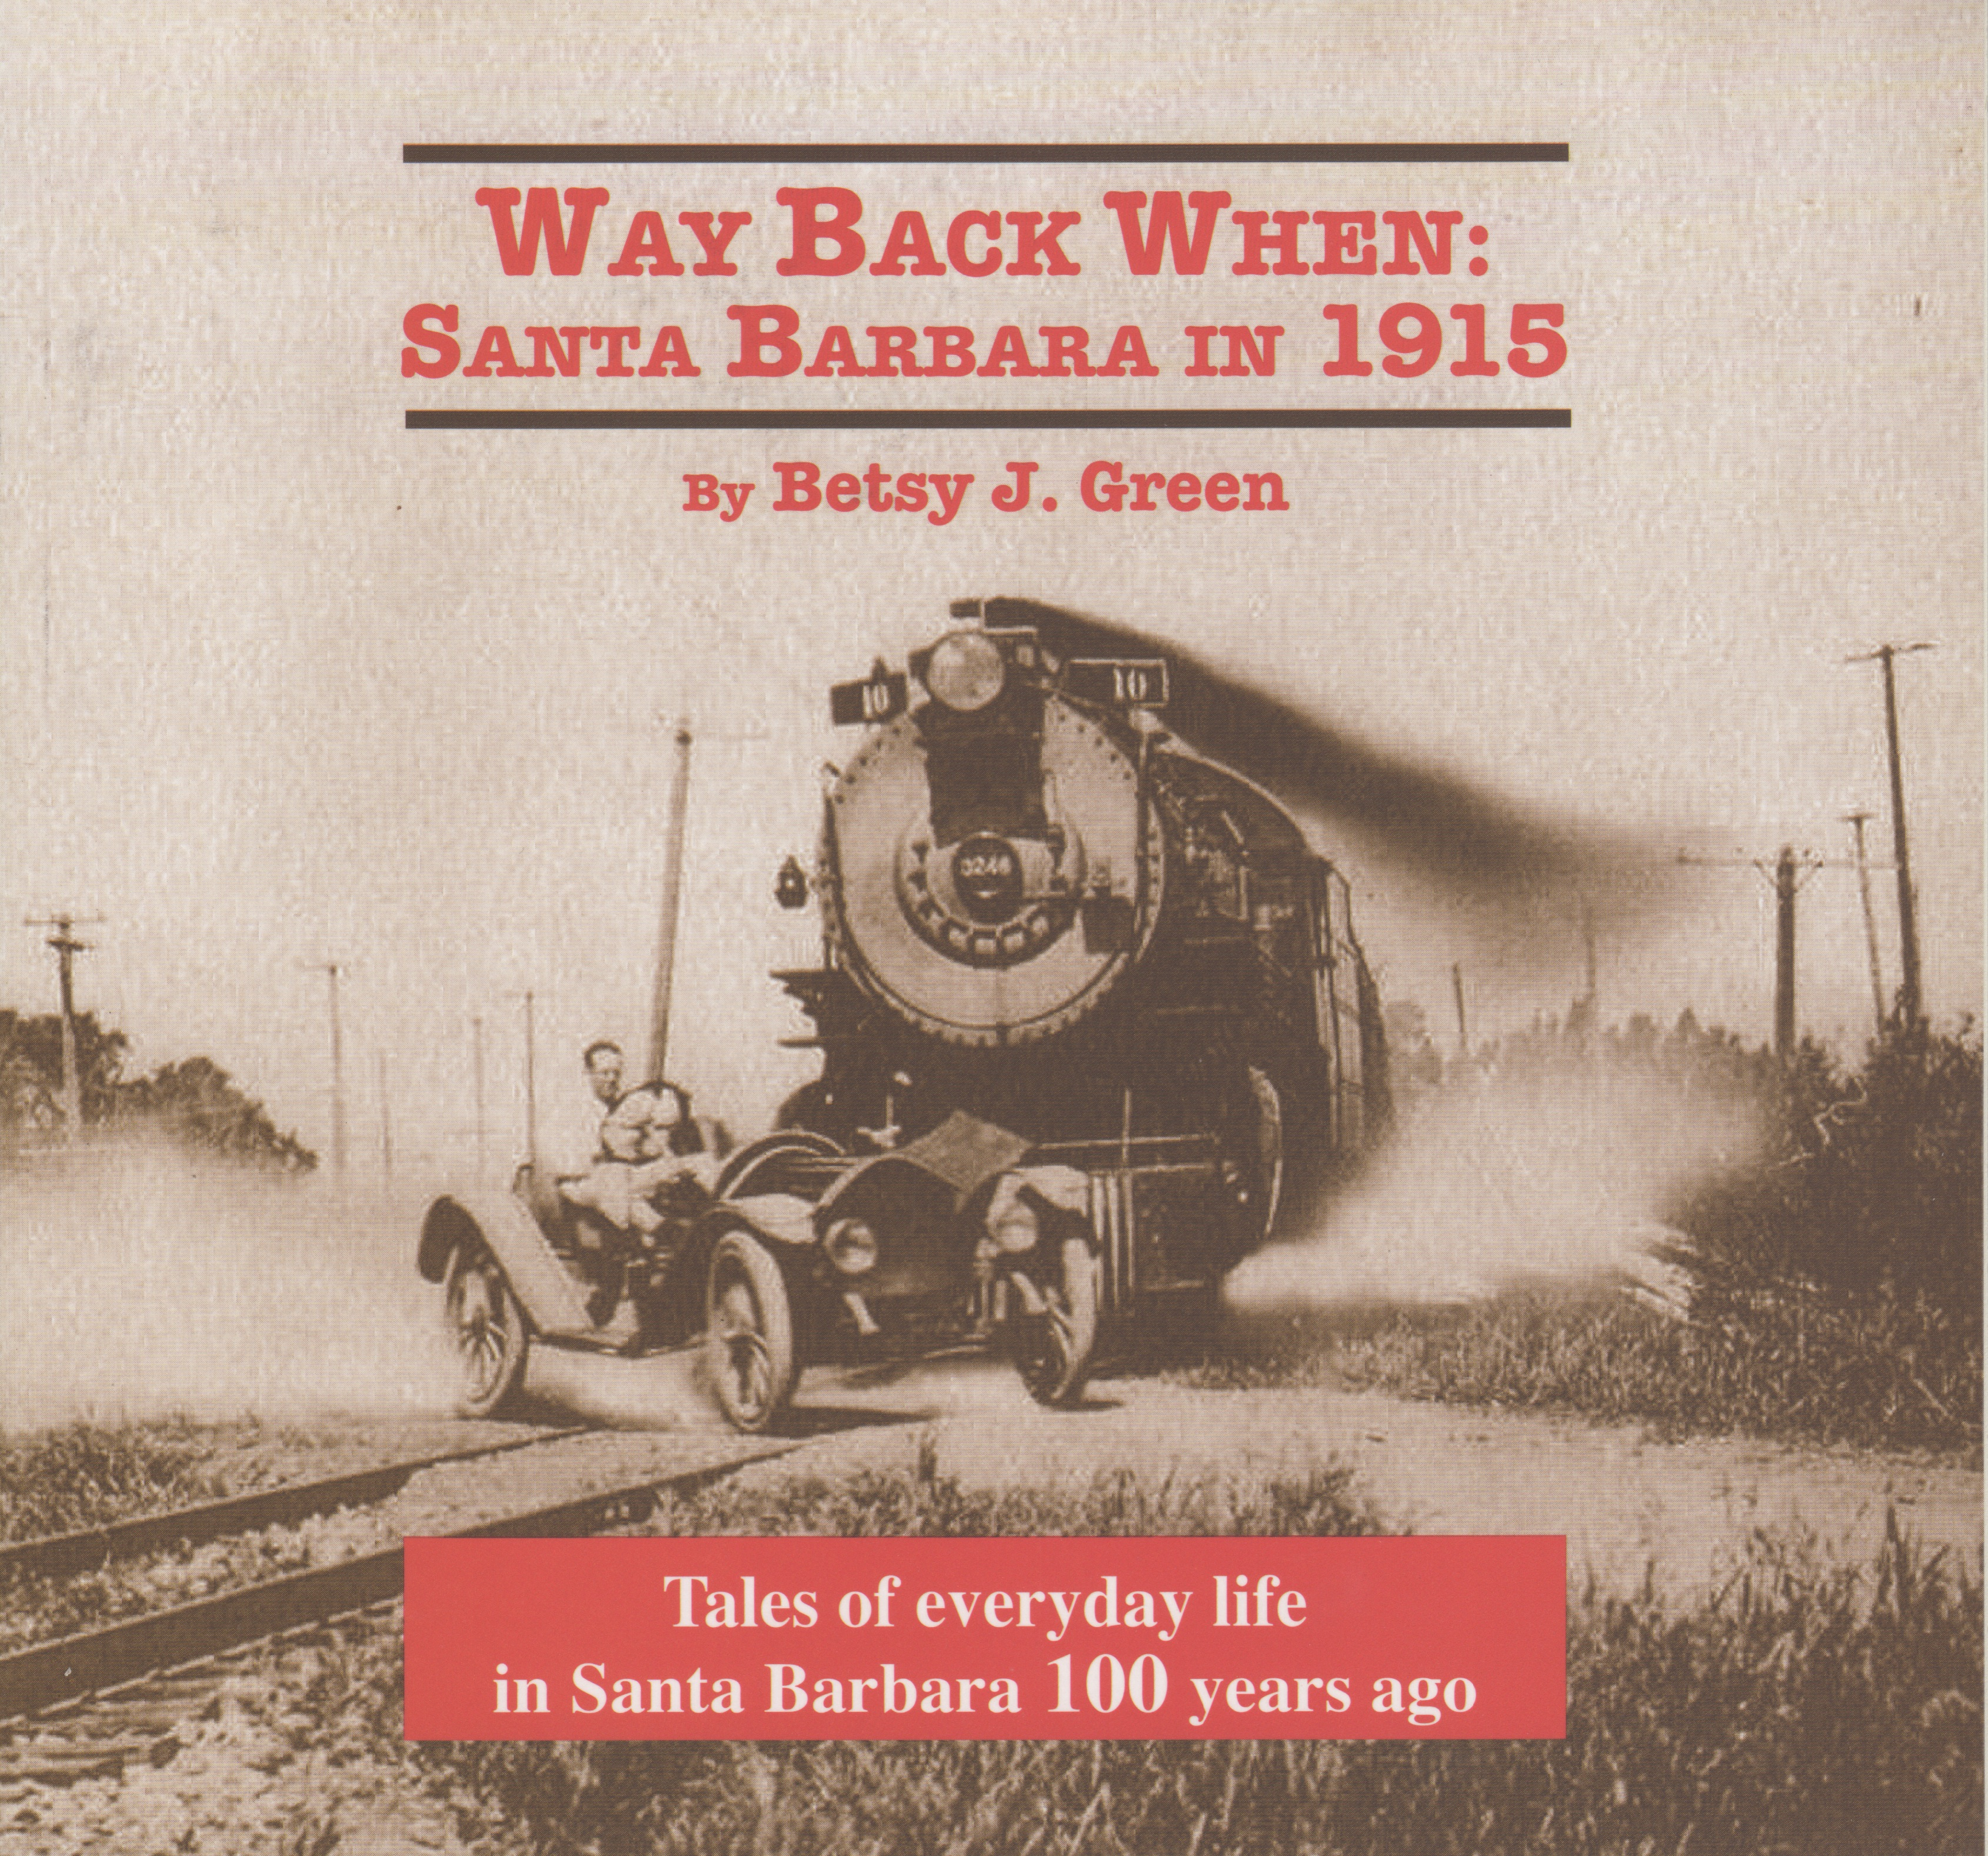 Way Back When: Santa Barbara in 1915, by Betsy J. Green, soft cover